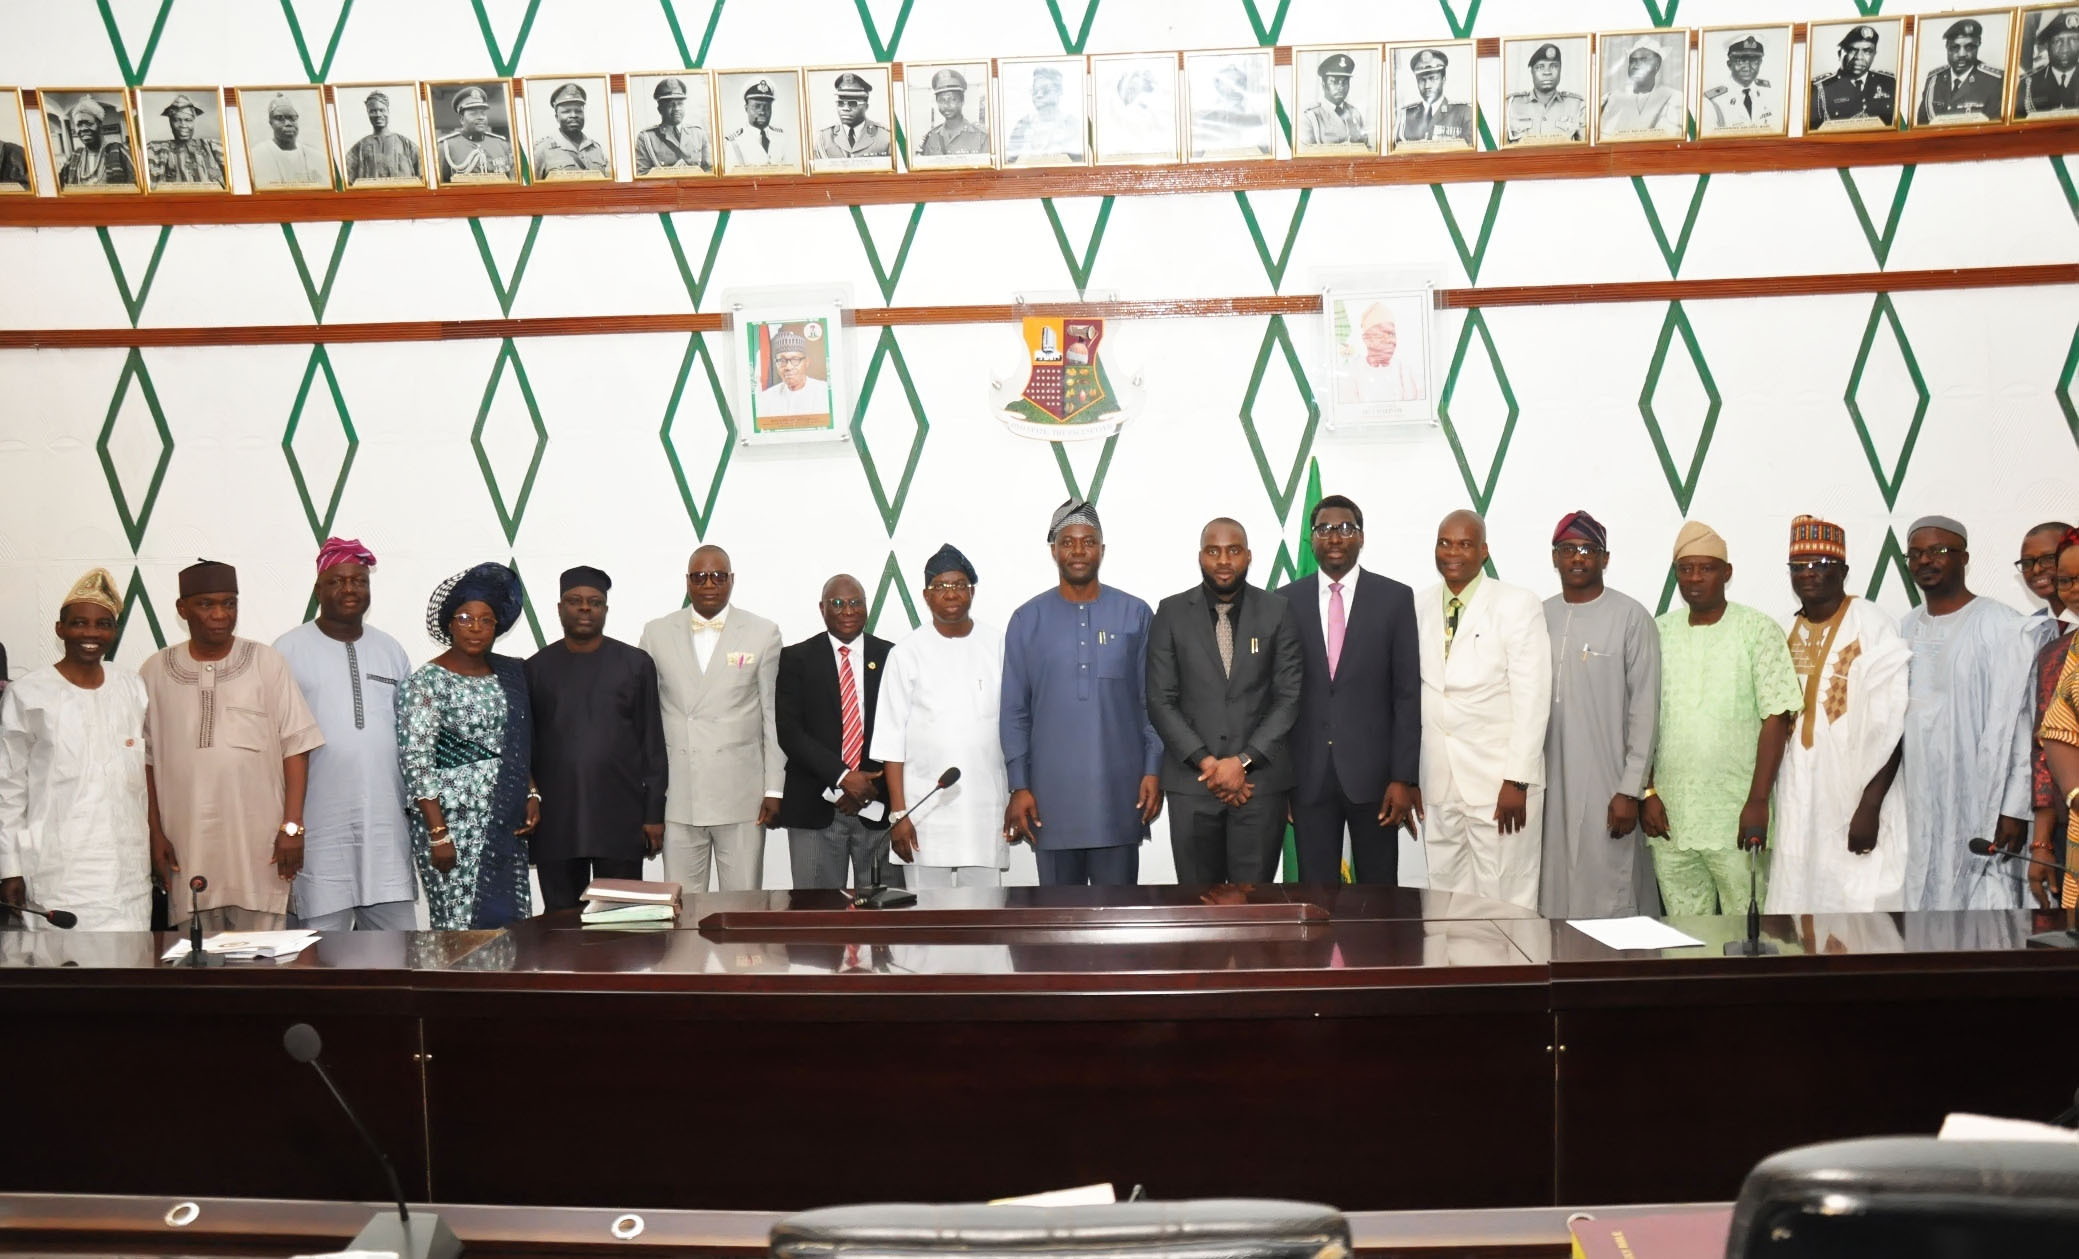 Oyo state governor Engr. Seyi Makinde with the new comissioners